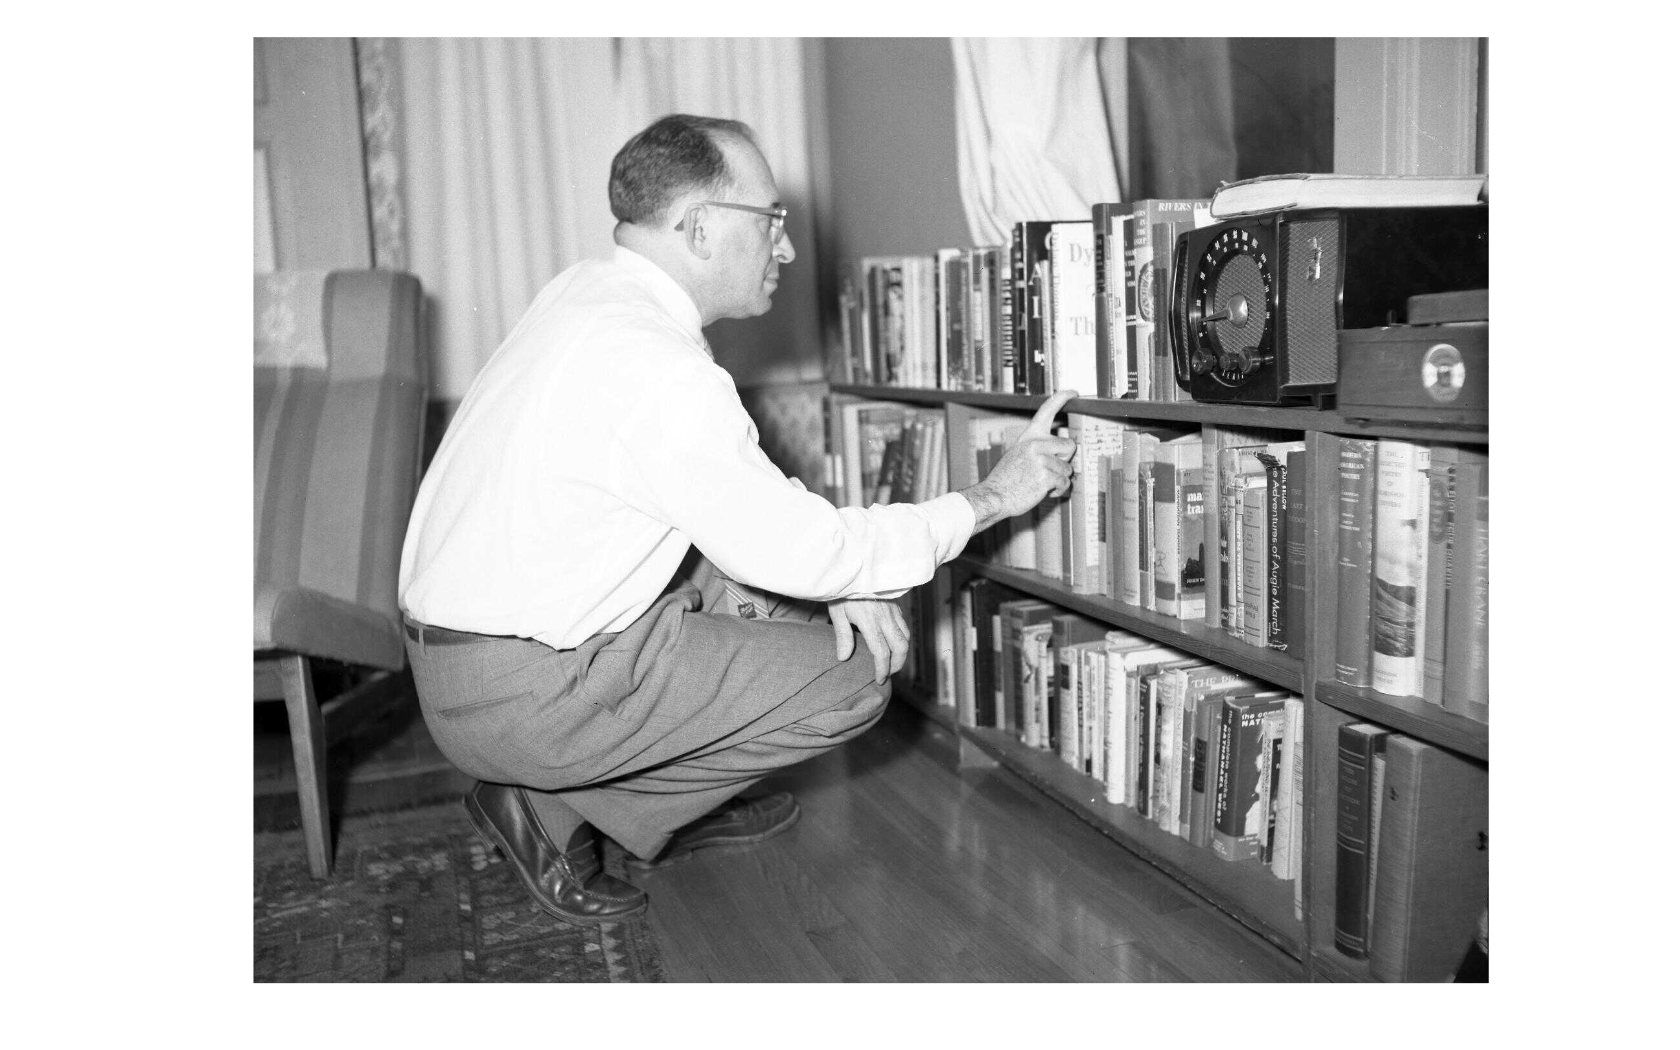 Bernard Malamud kneeling at bookshelf